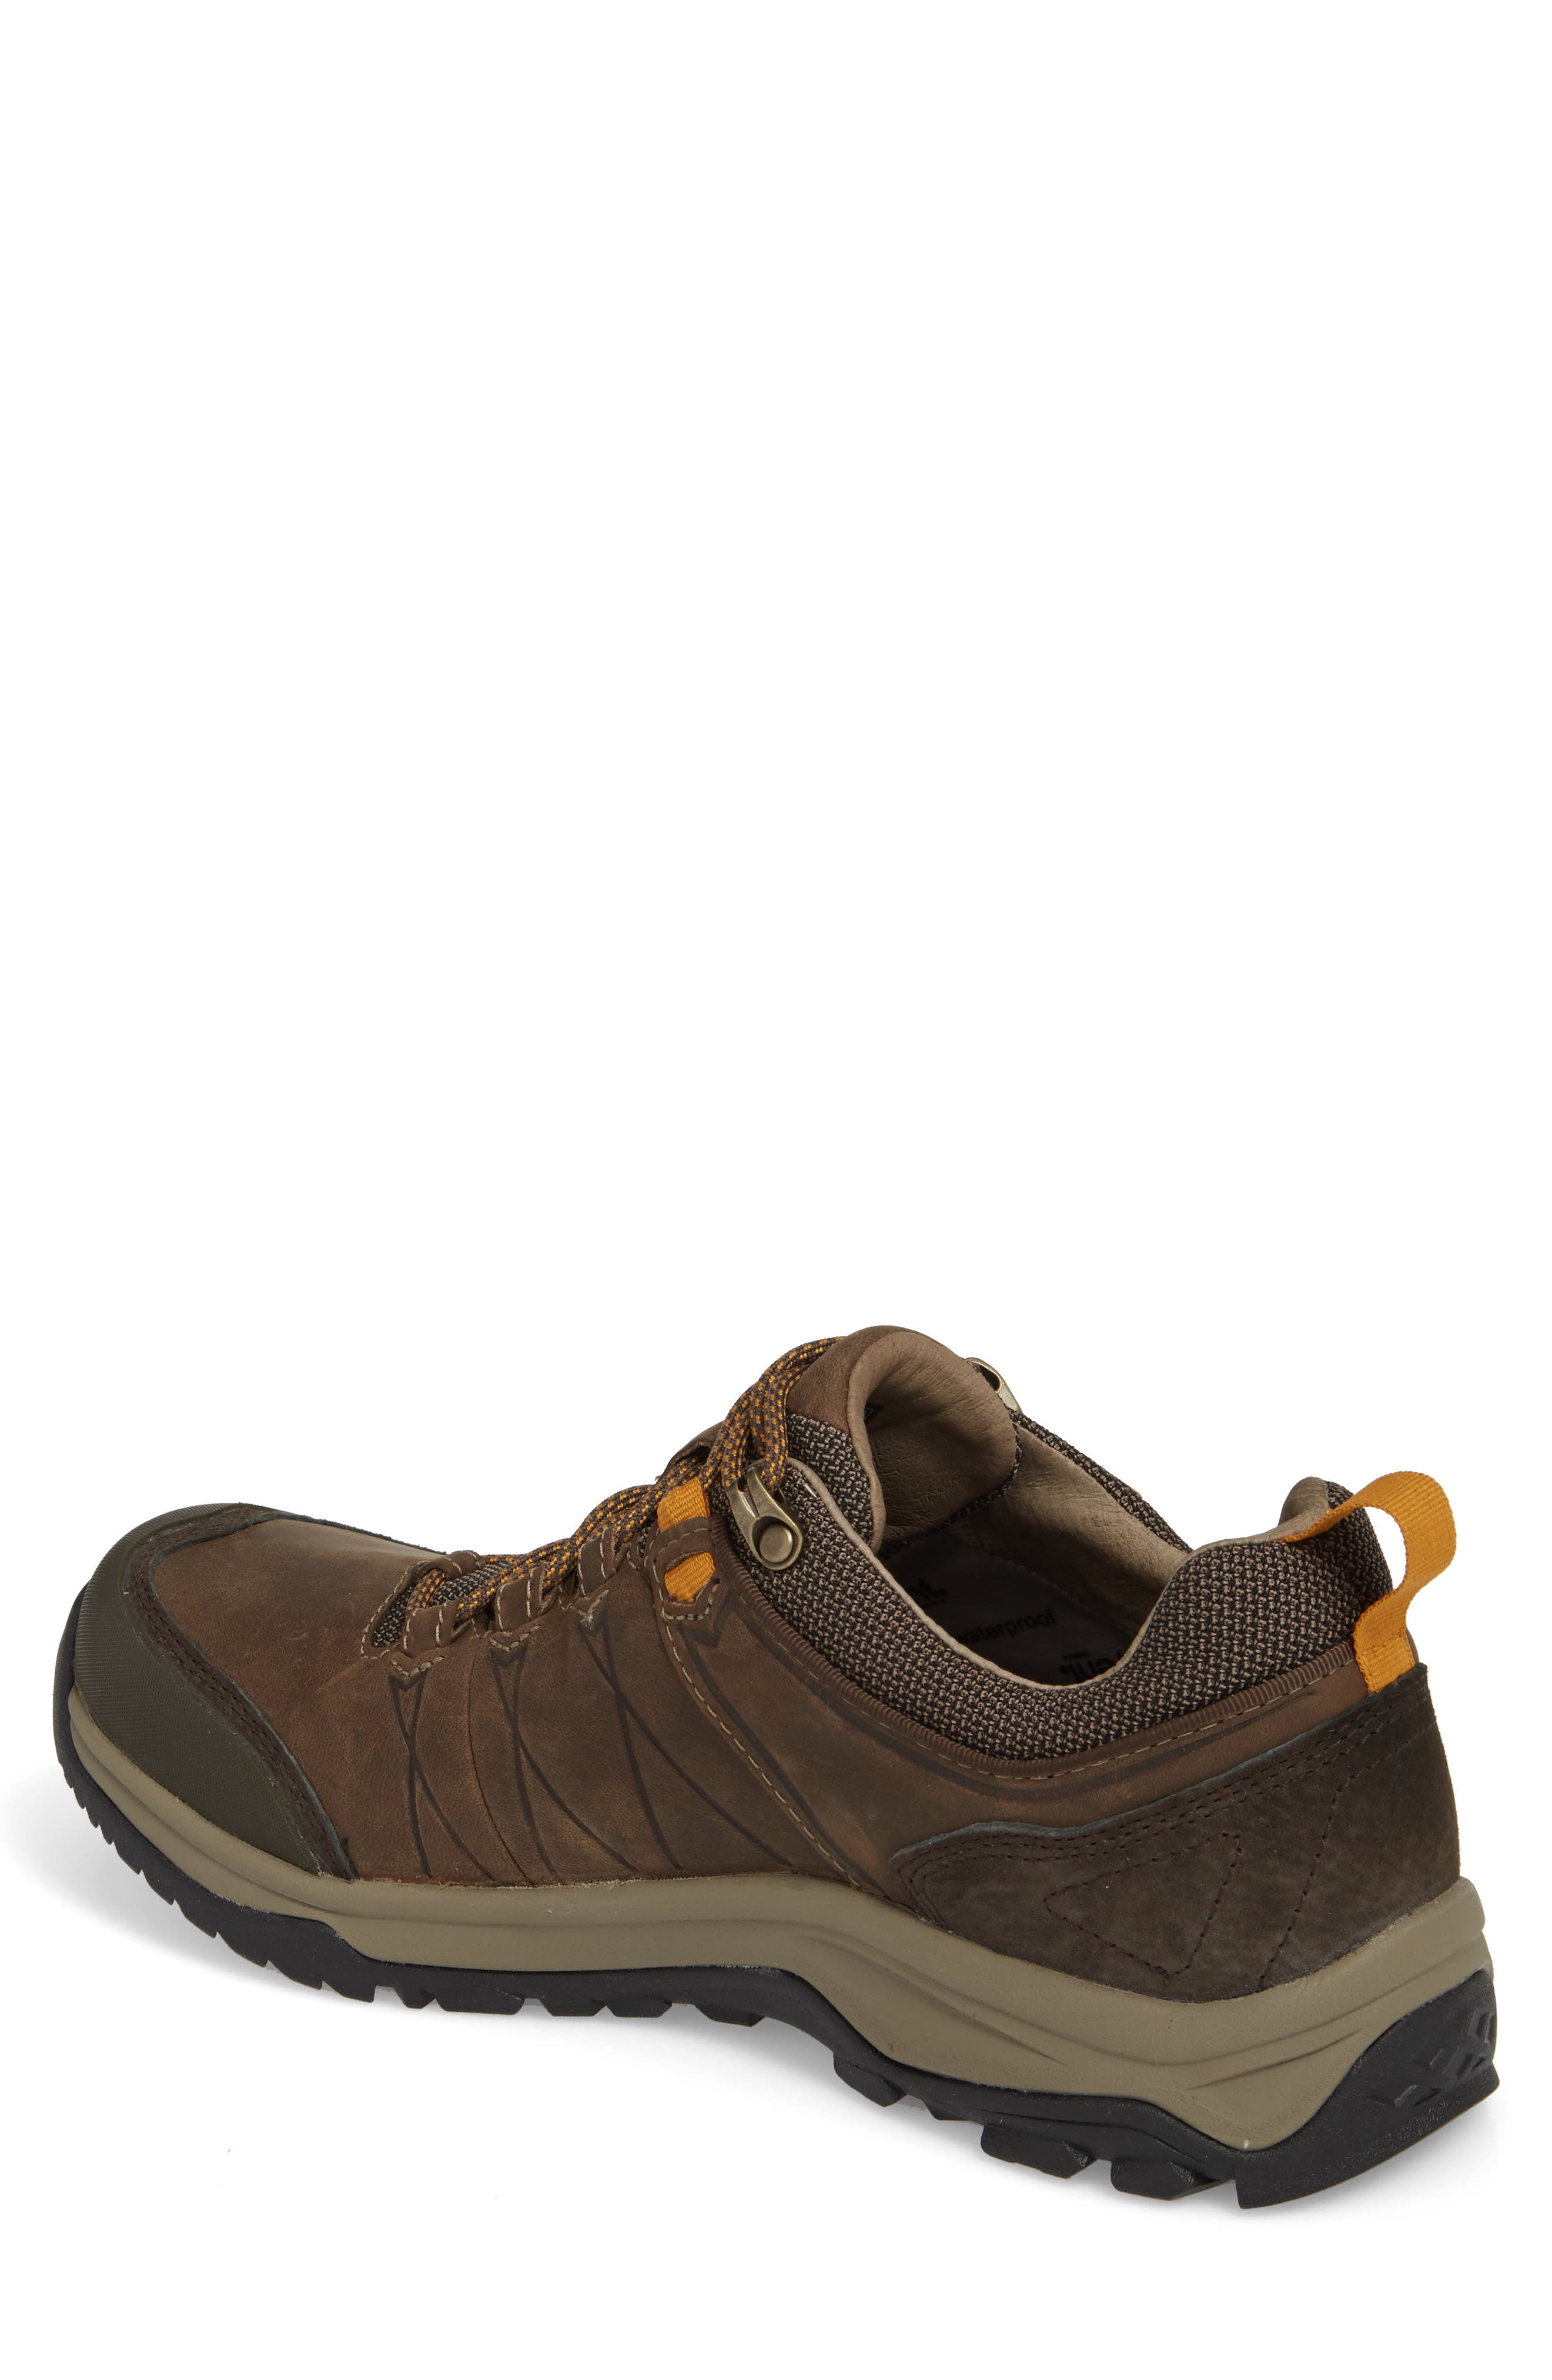 Alternate Image 2  - Teva Arrowood Riva Waterproof Sneaker (Men)